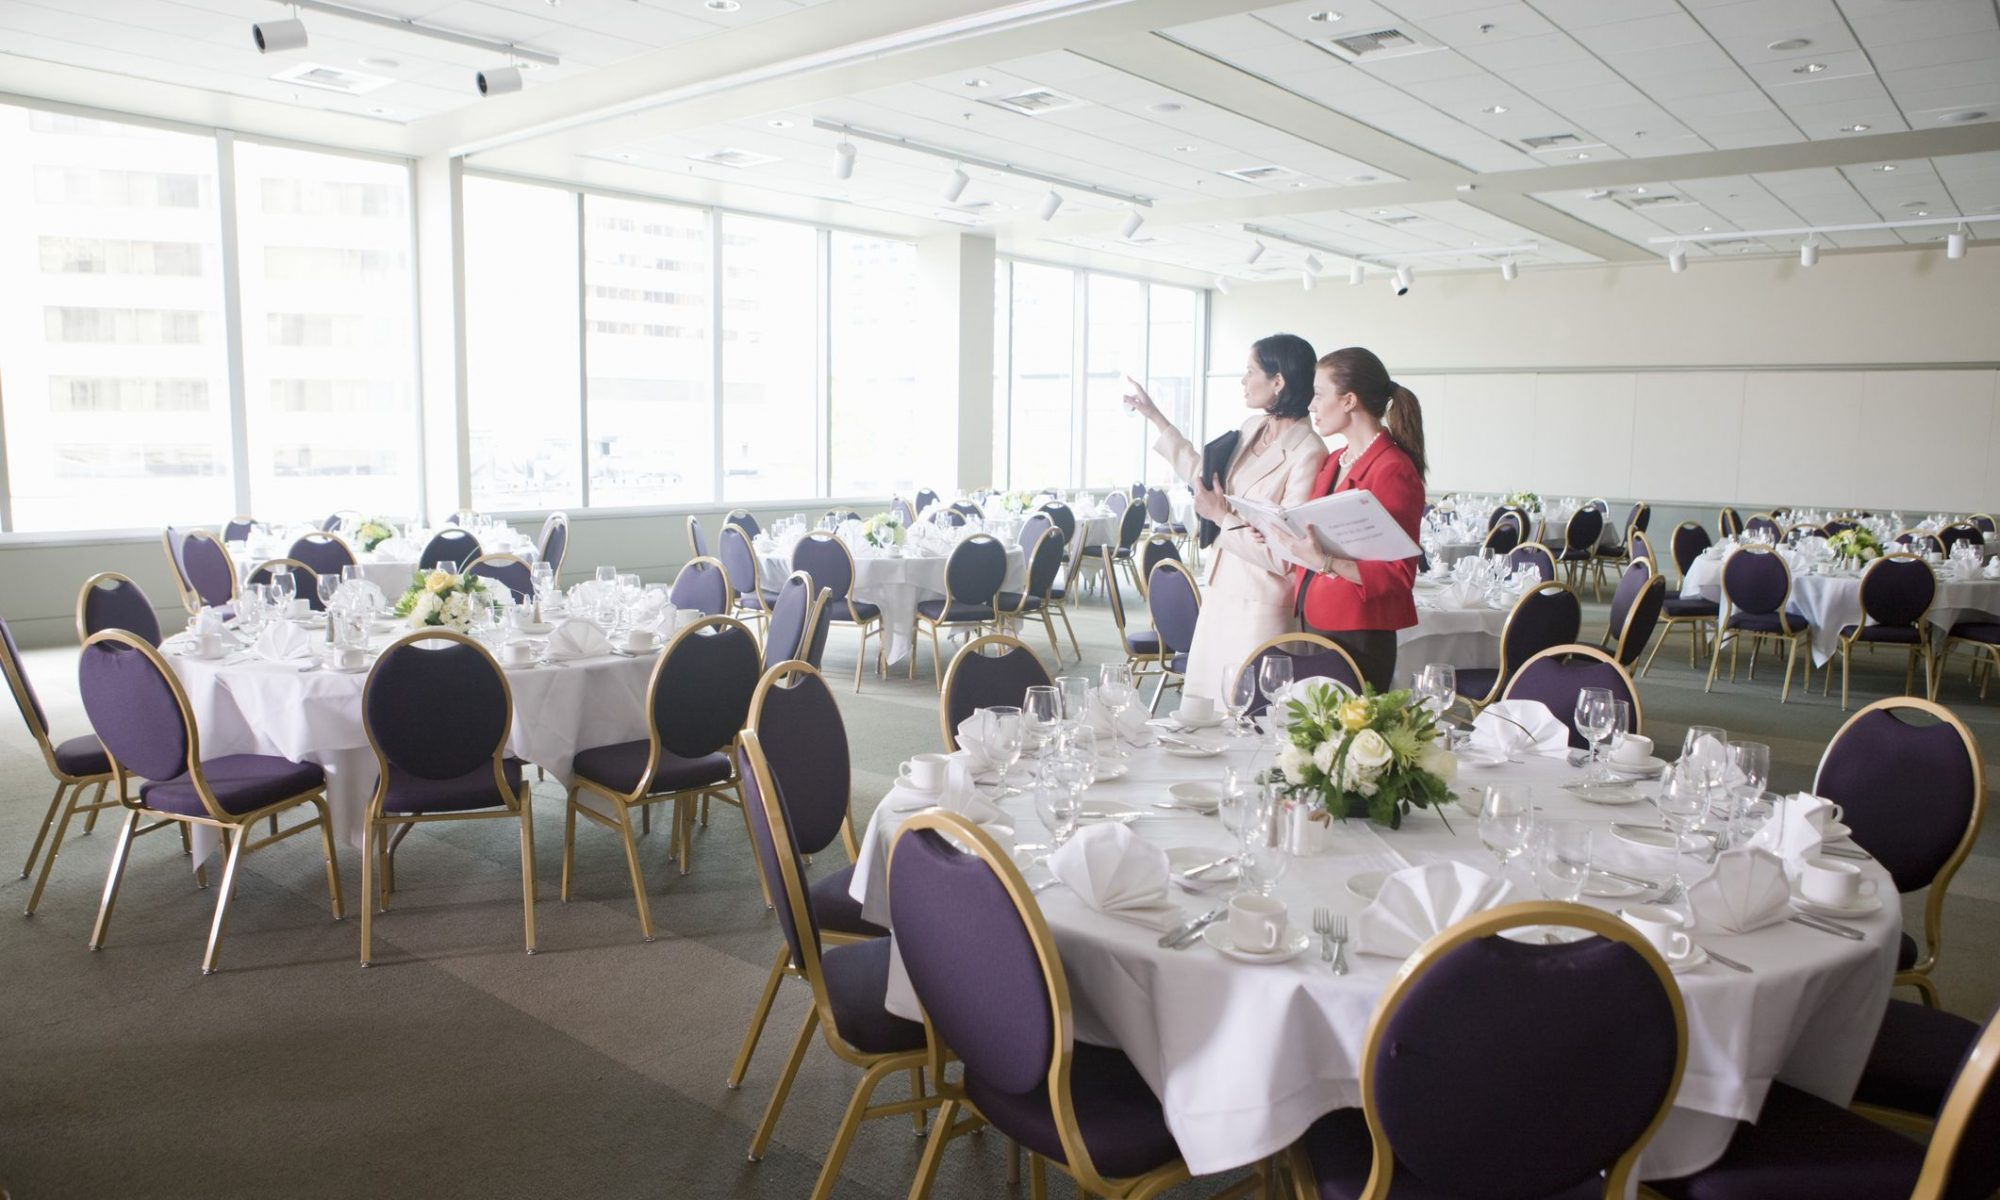 Services your event company should provide